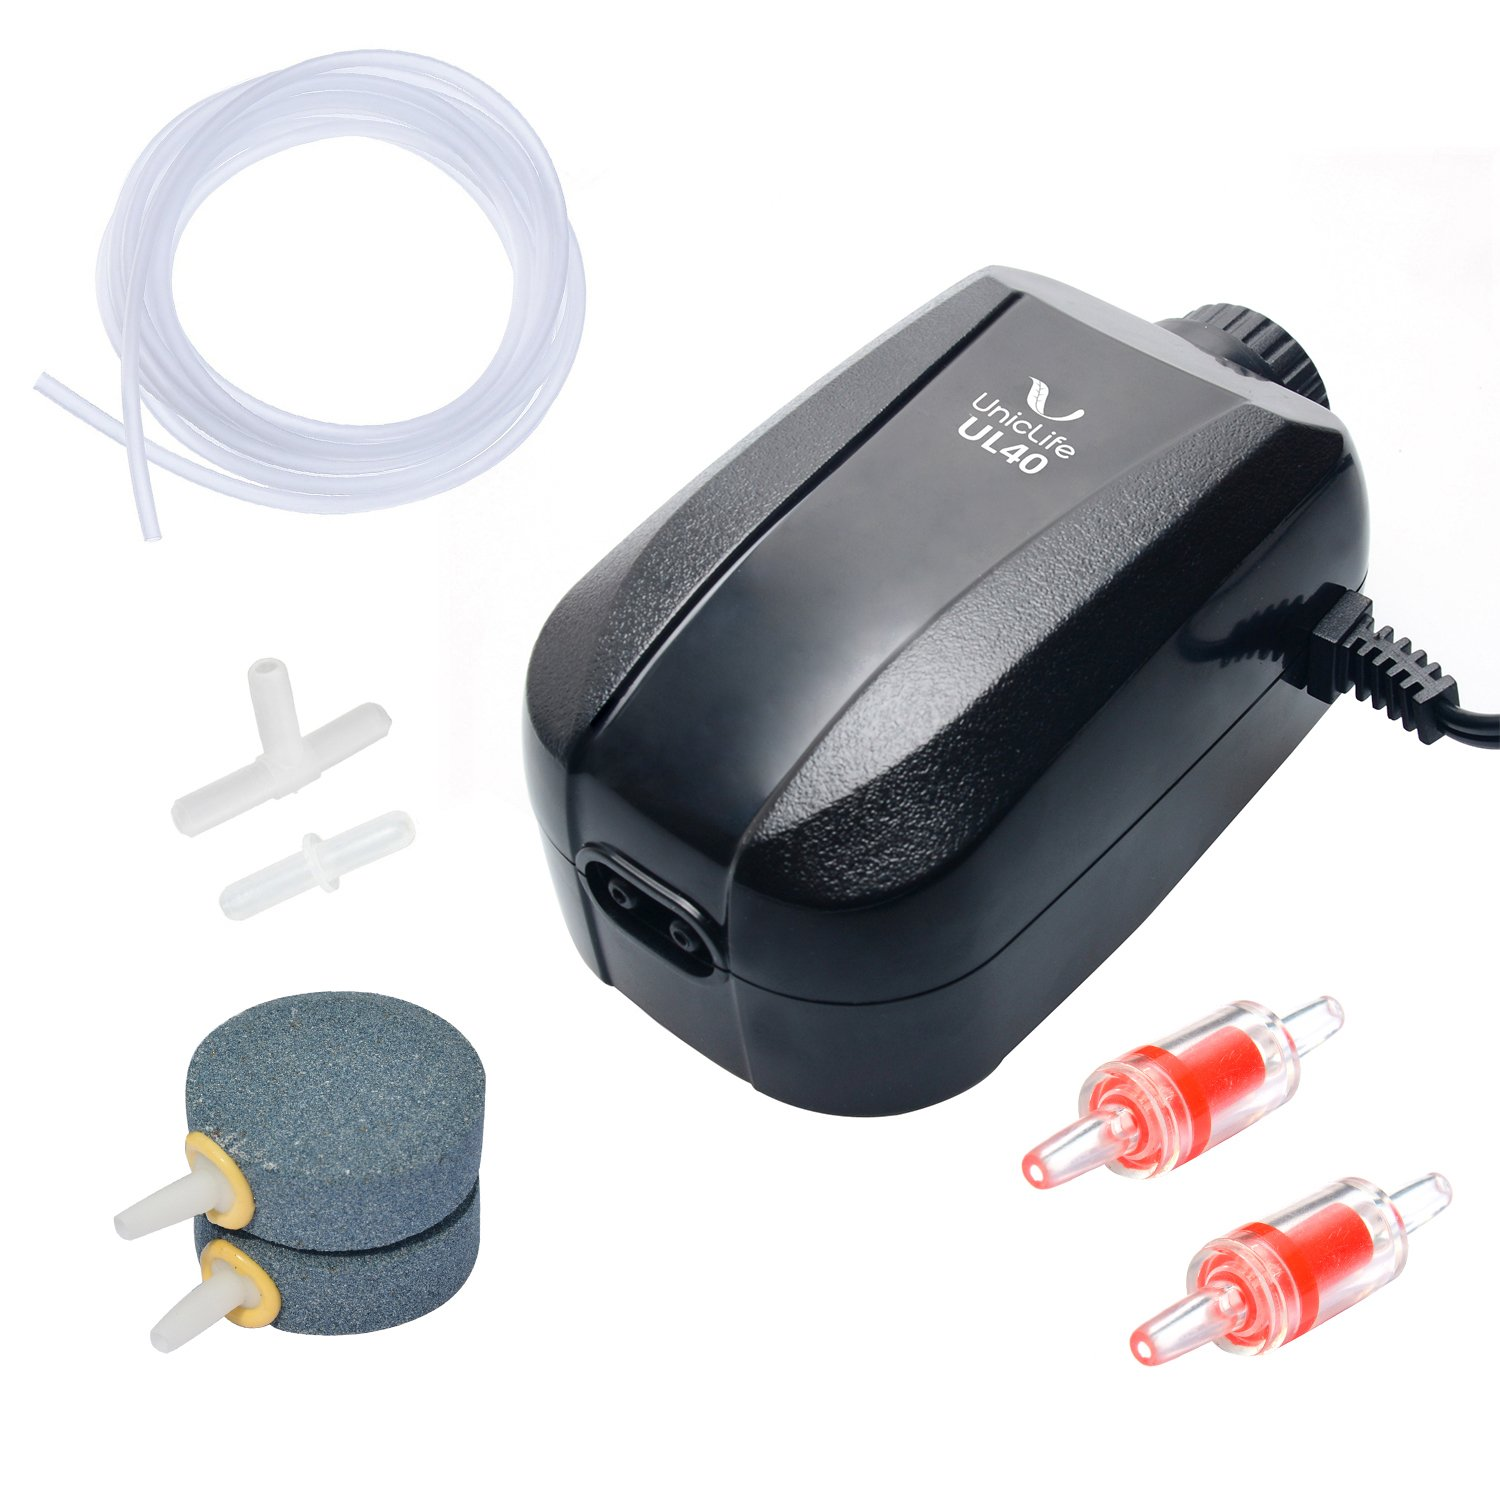 Uniclife Aquarium Air Pump Dual Outlet with Accessories for Up to 100 Gallon Tank